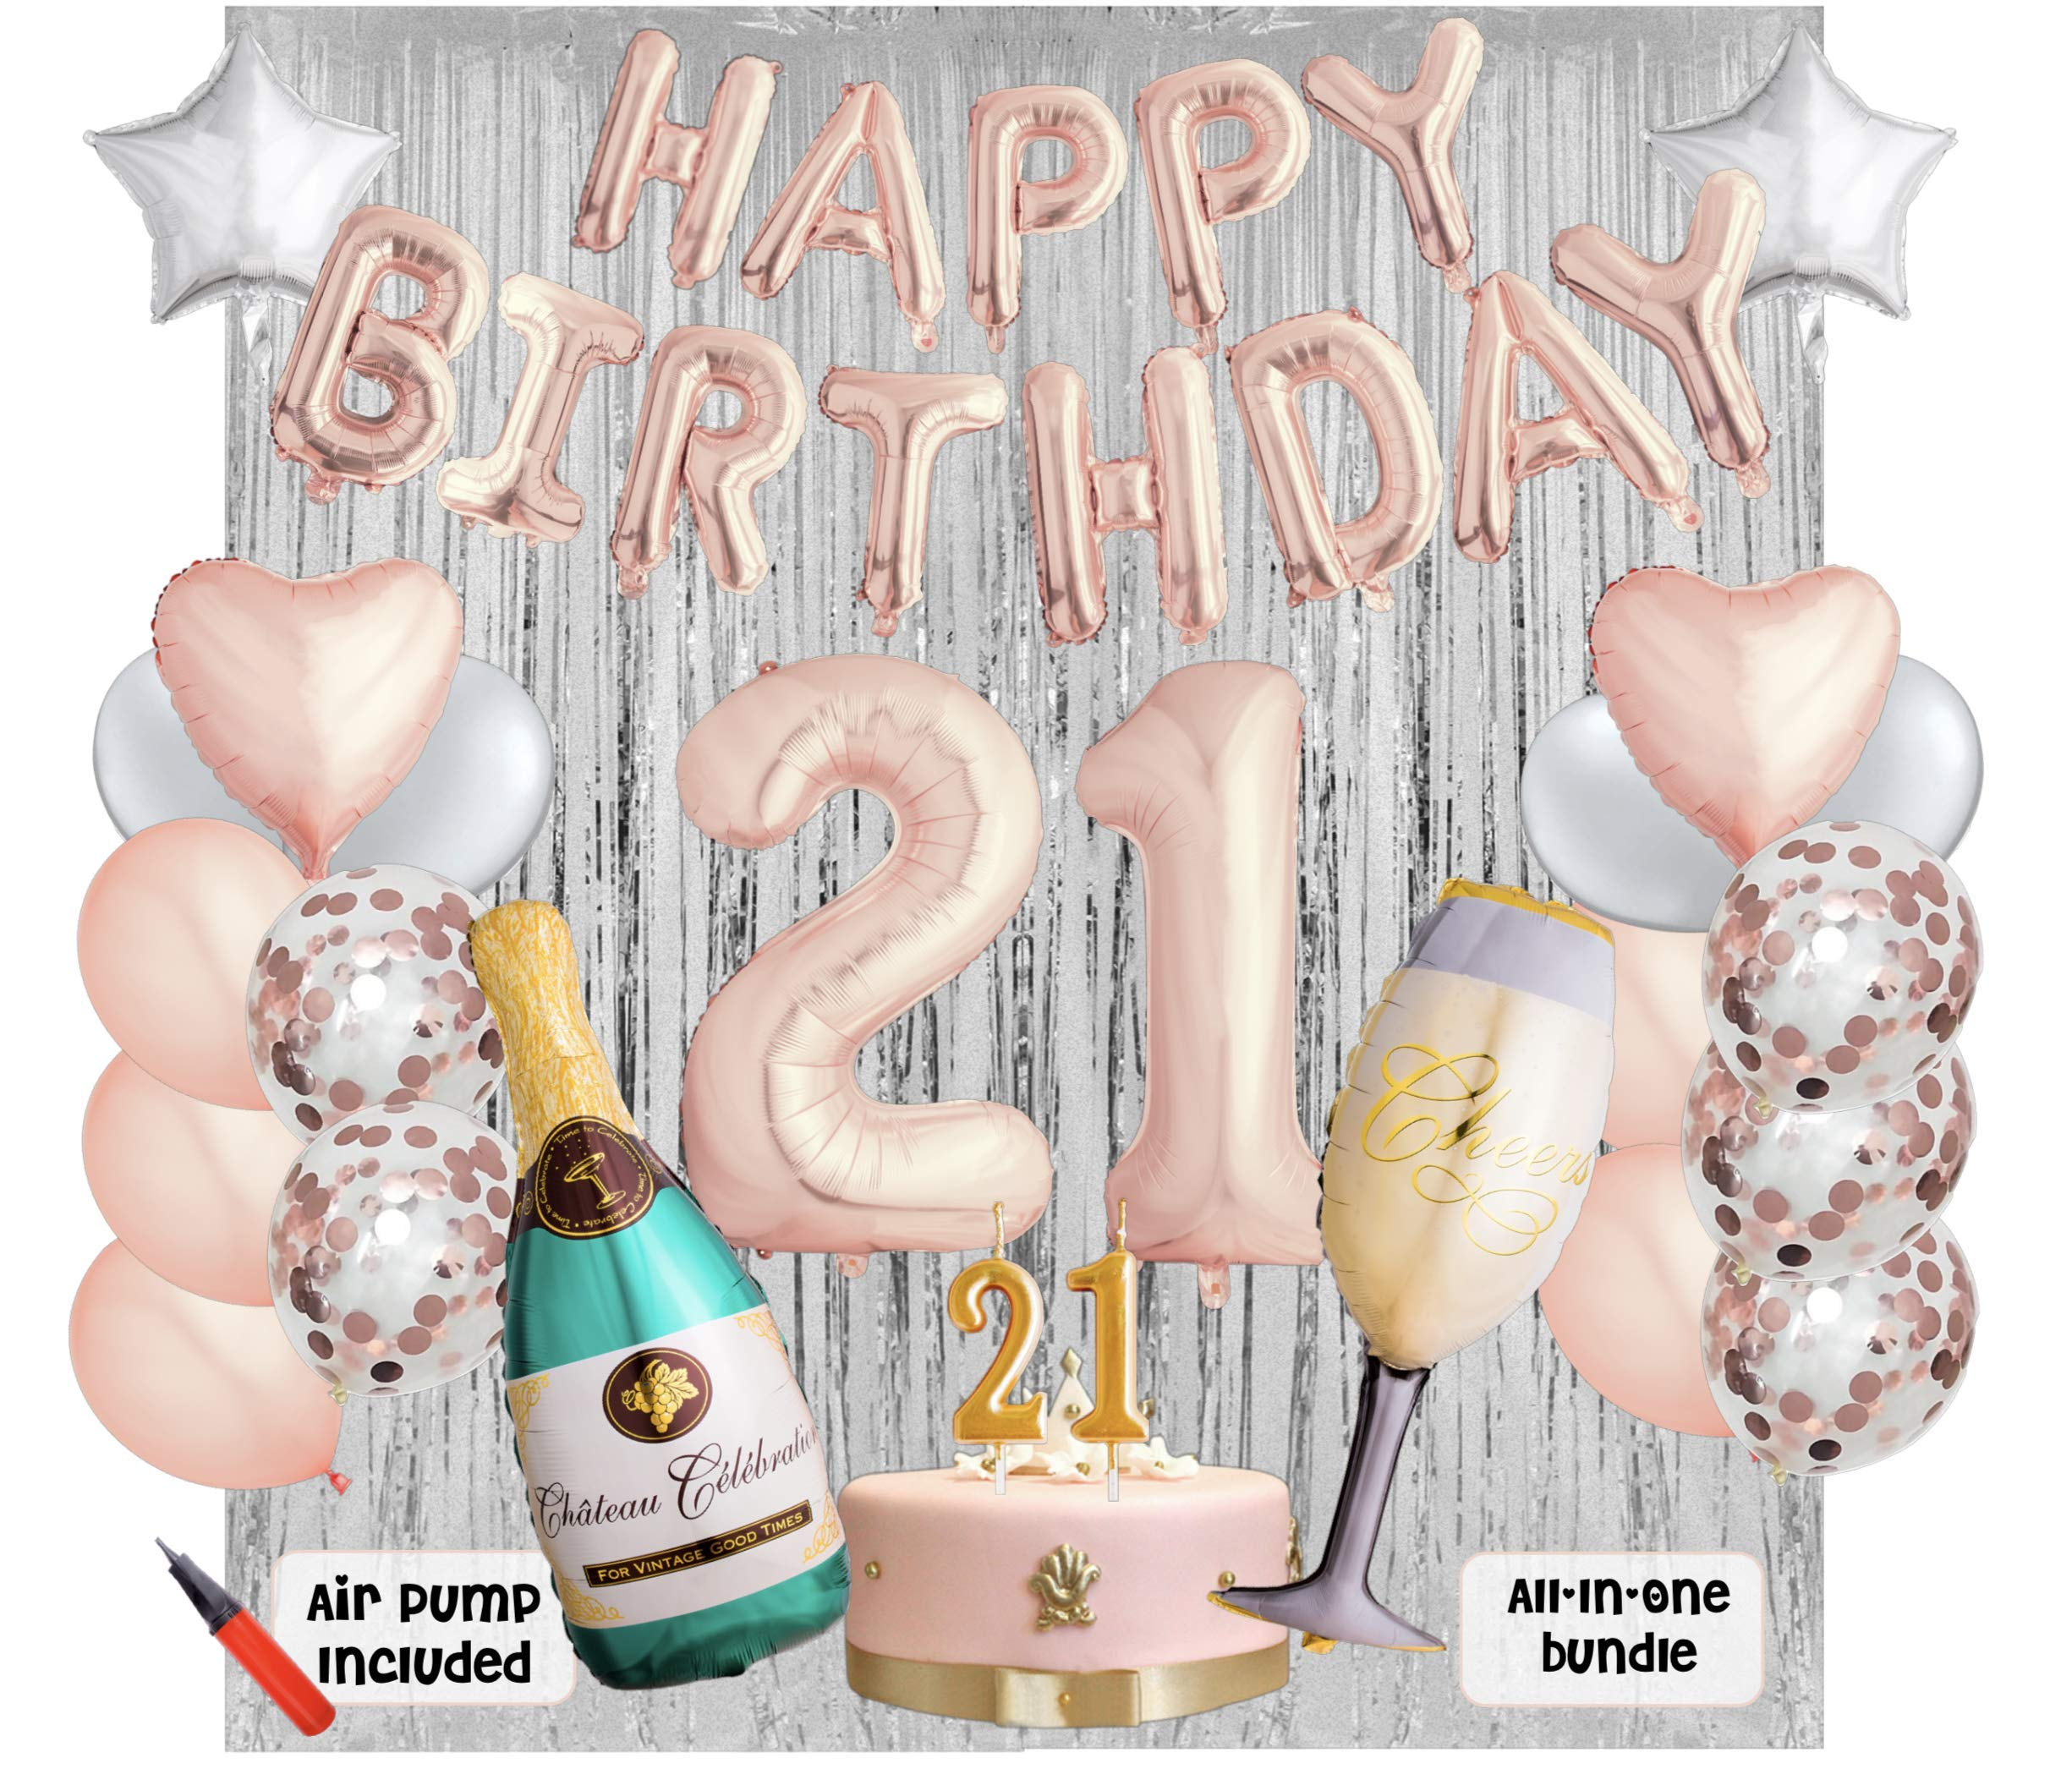 21st Birthday Party Balloons and Decoration Bundle - 43 Pieces Party Supplies and Balloons All in One Set - Rose Gold Happy Birthday Balloons, 21 Number Balloons, Air Pump